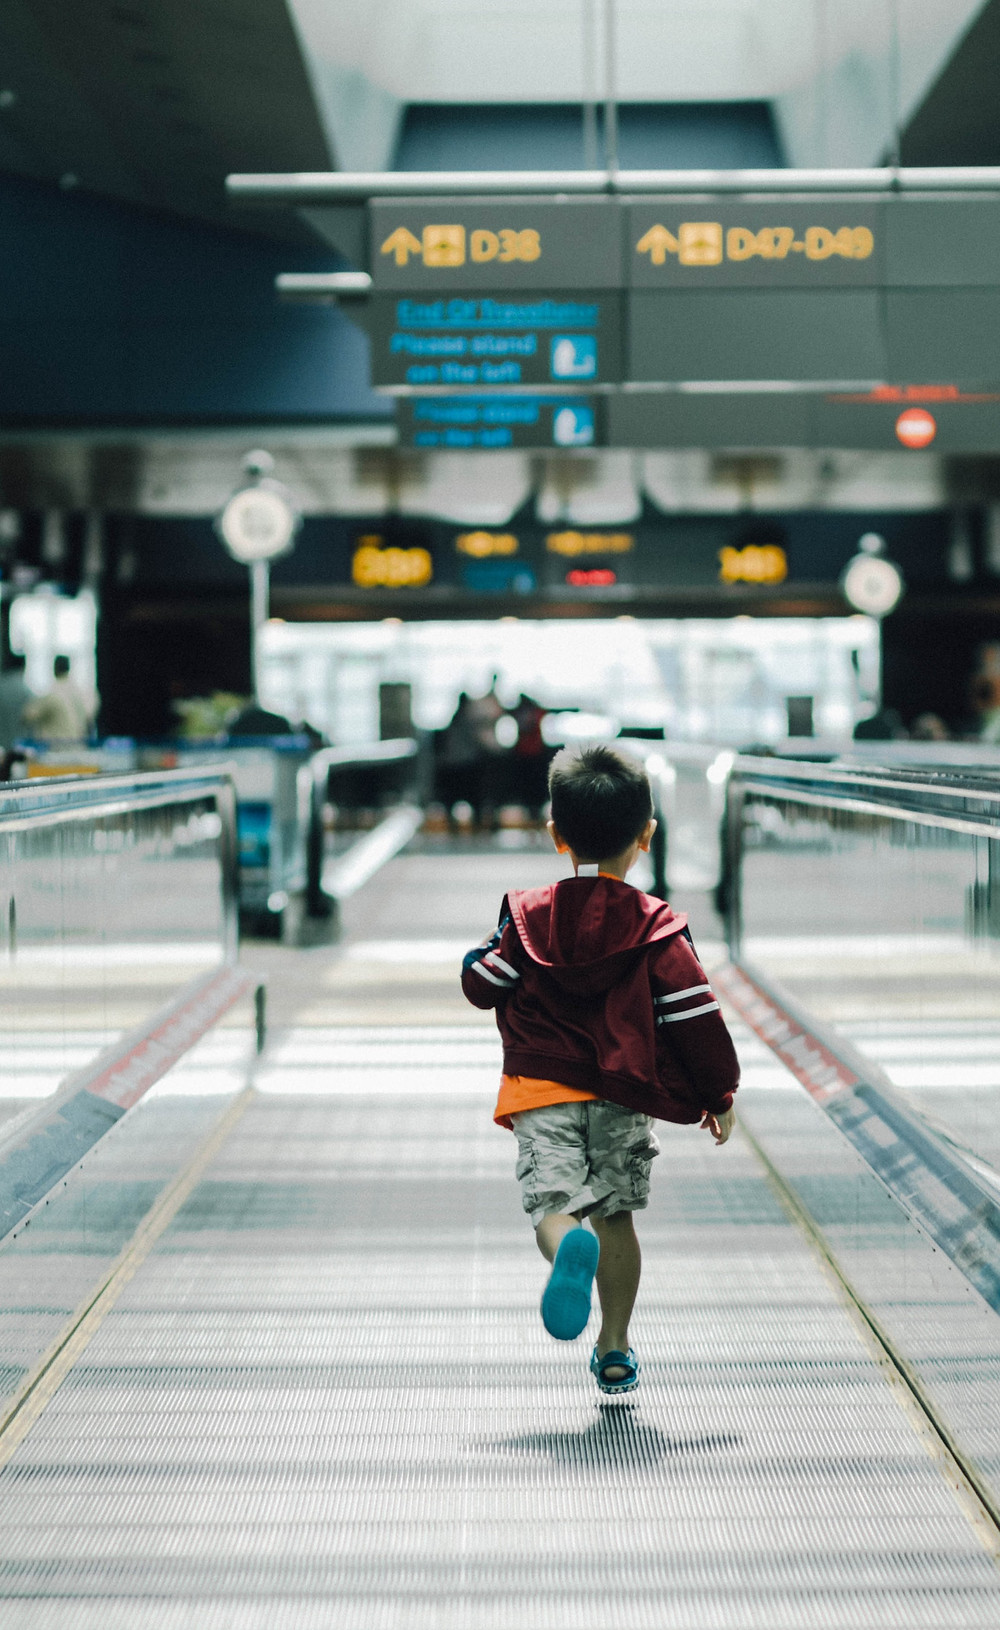 small-boy-running-in-airport-departure-area